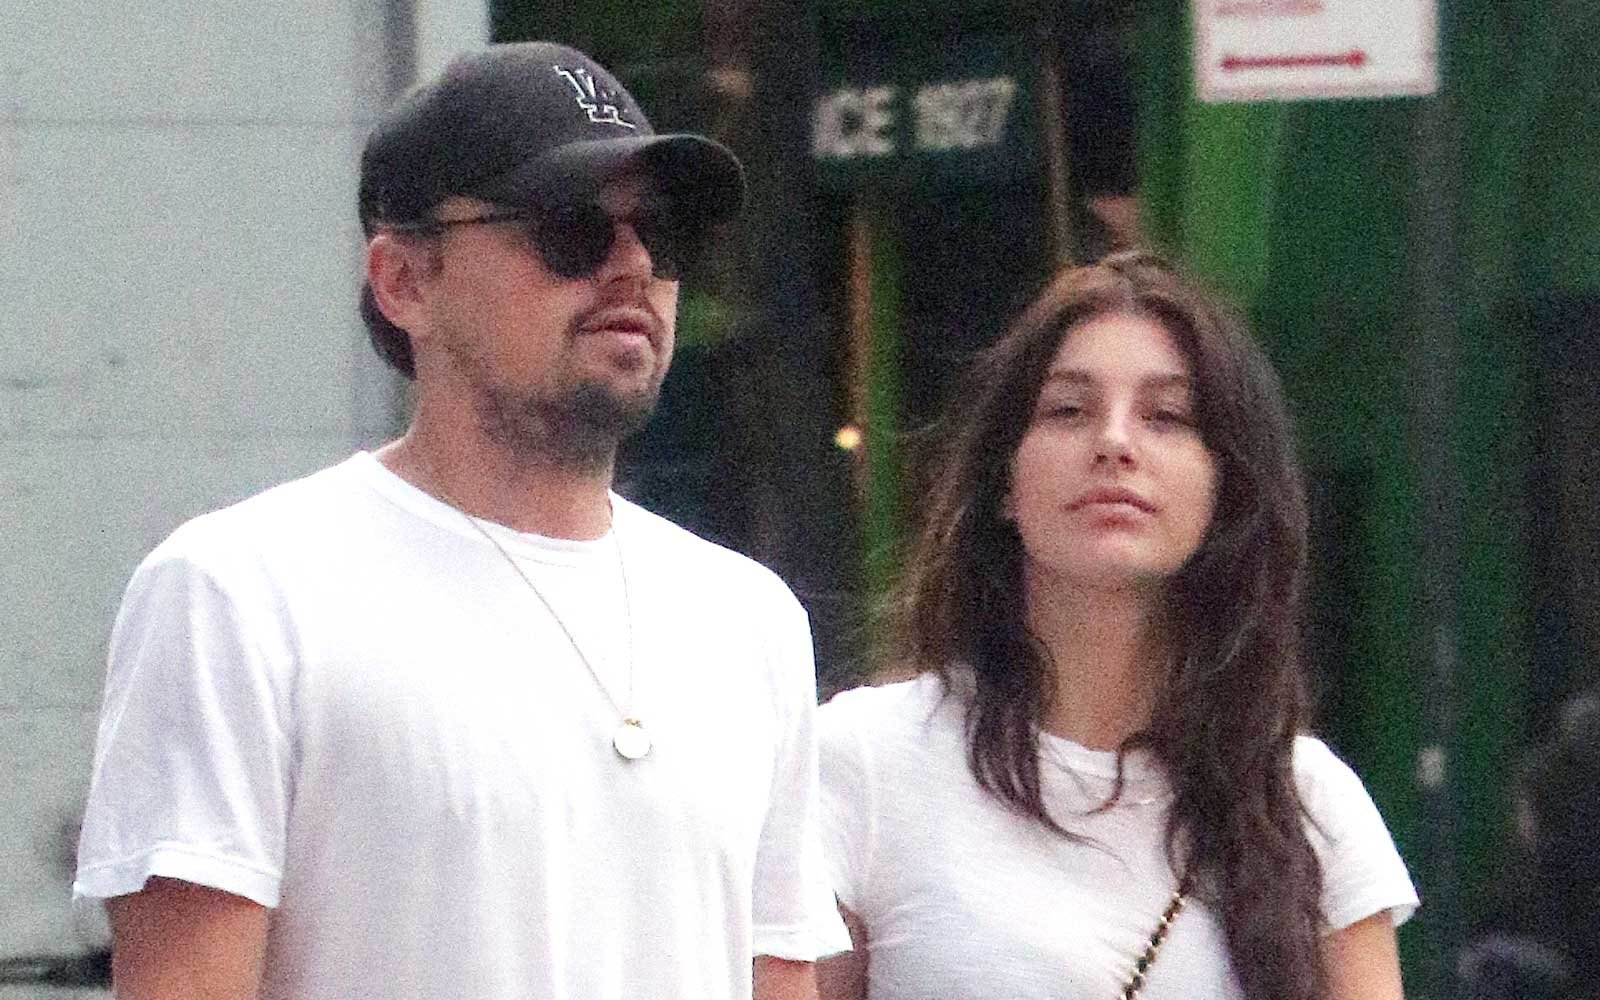 Leonardo Dicaprio Is Spending His Summer On A Yacht In The South Of France Surprising No One